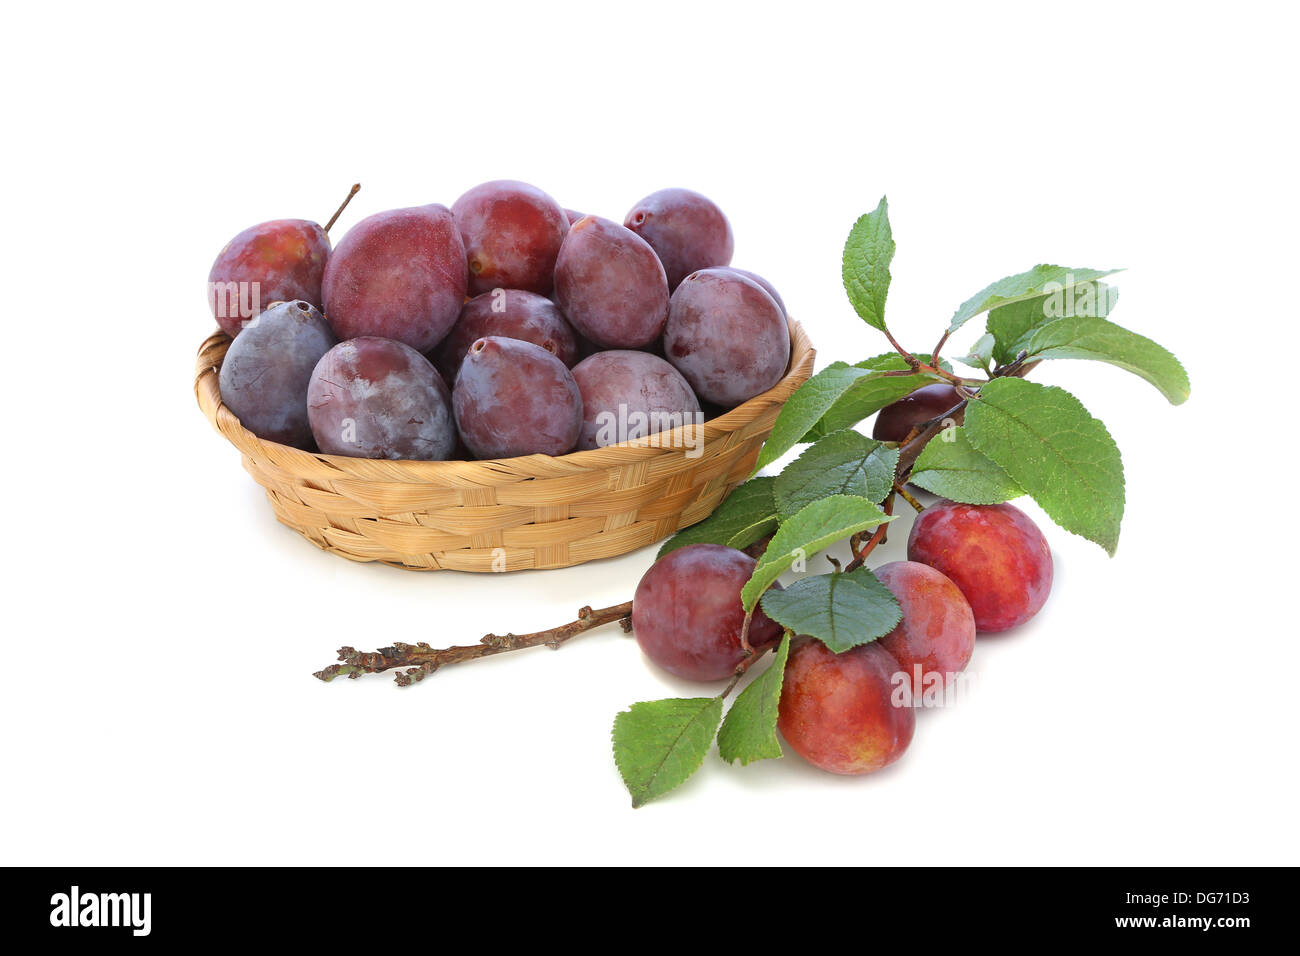 Plums in a wicker basket with a branch isolated on white background Stock Photo